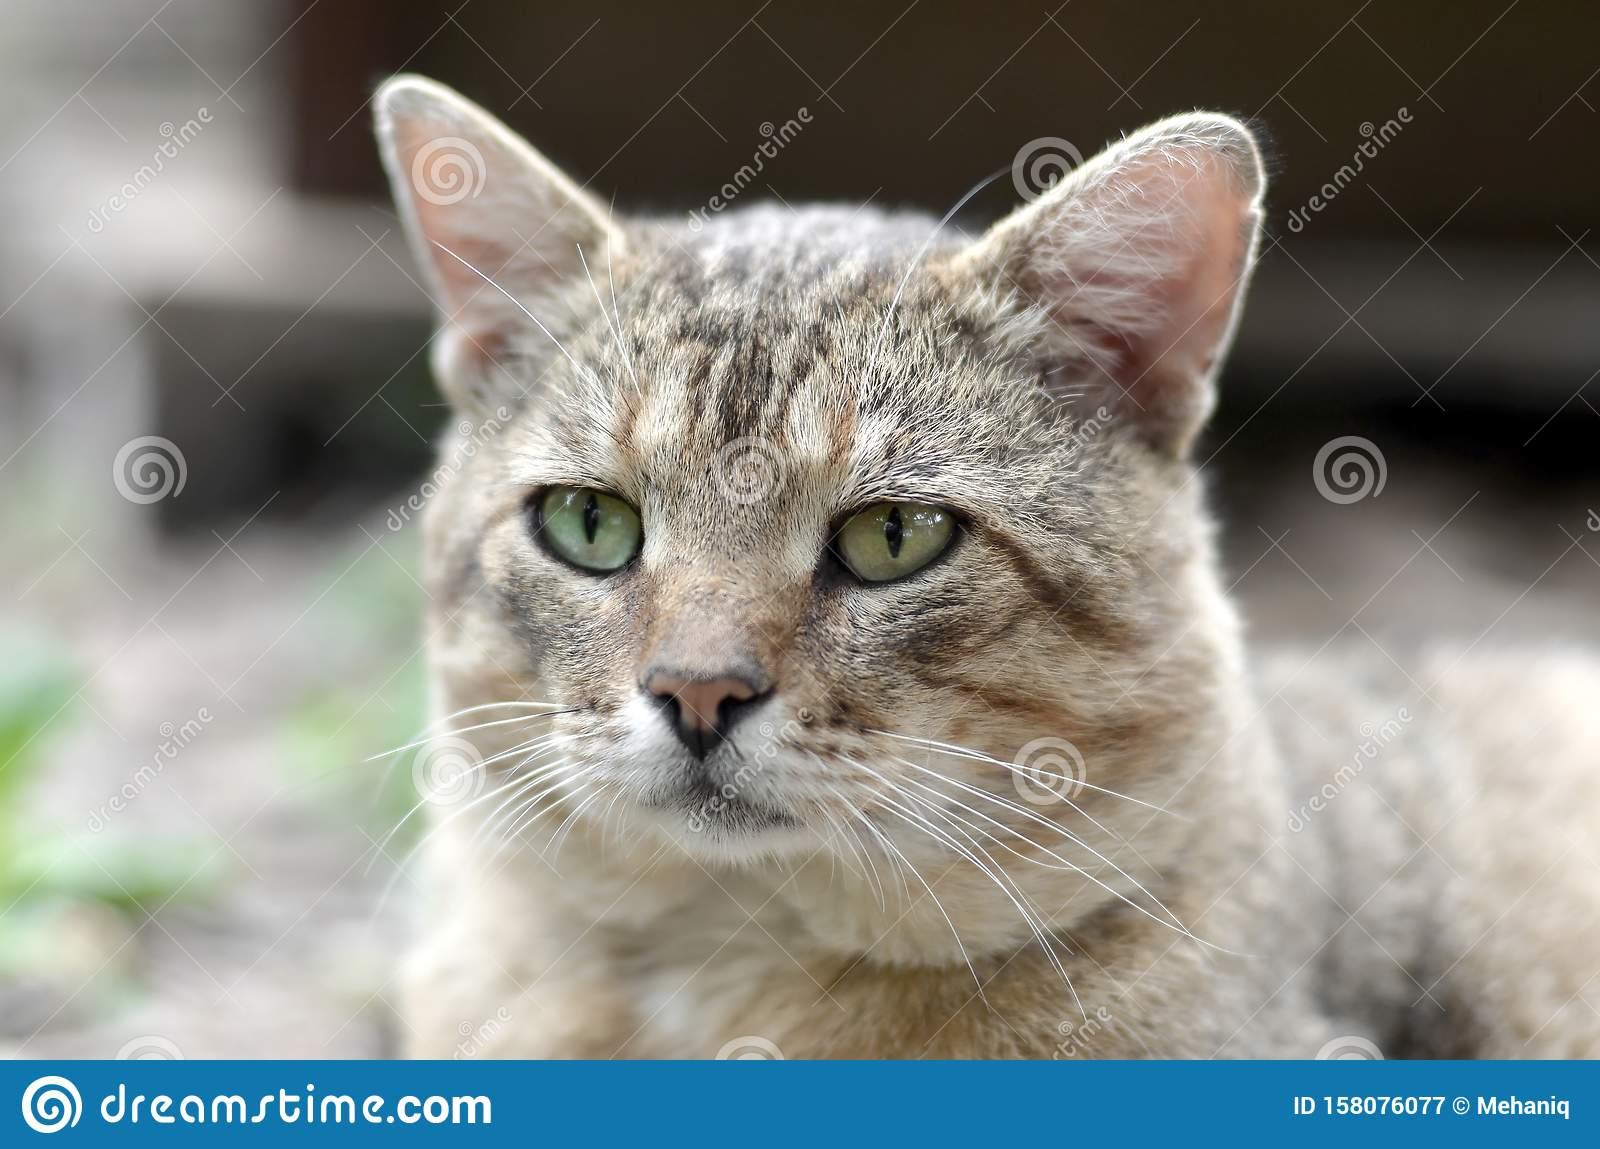 Sad muzzle portrait of a grey striped tabby cat with green eyes, selective focus